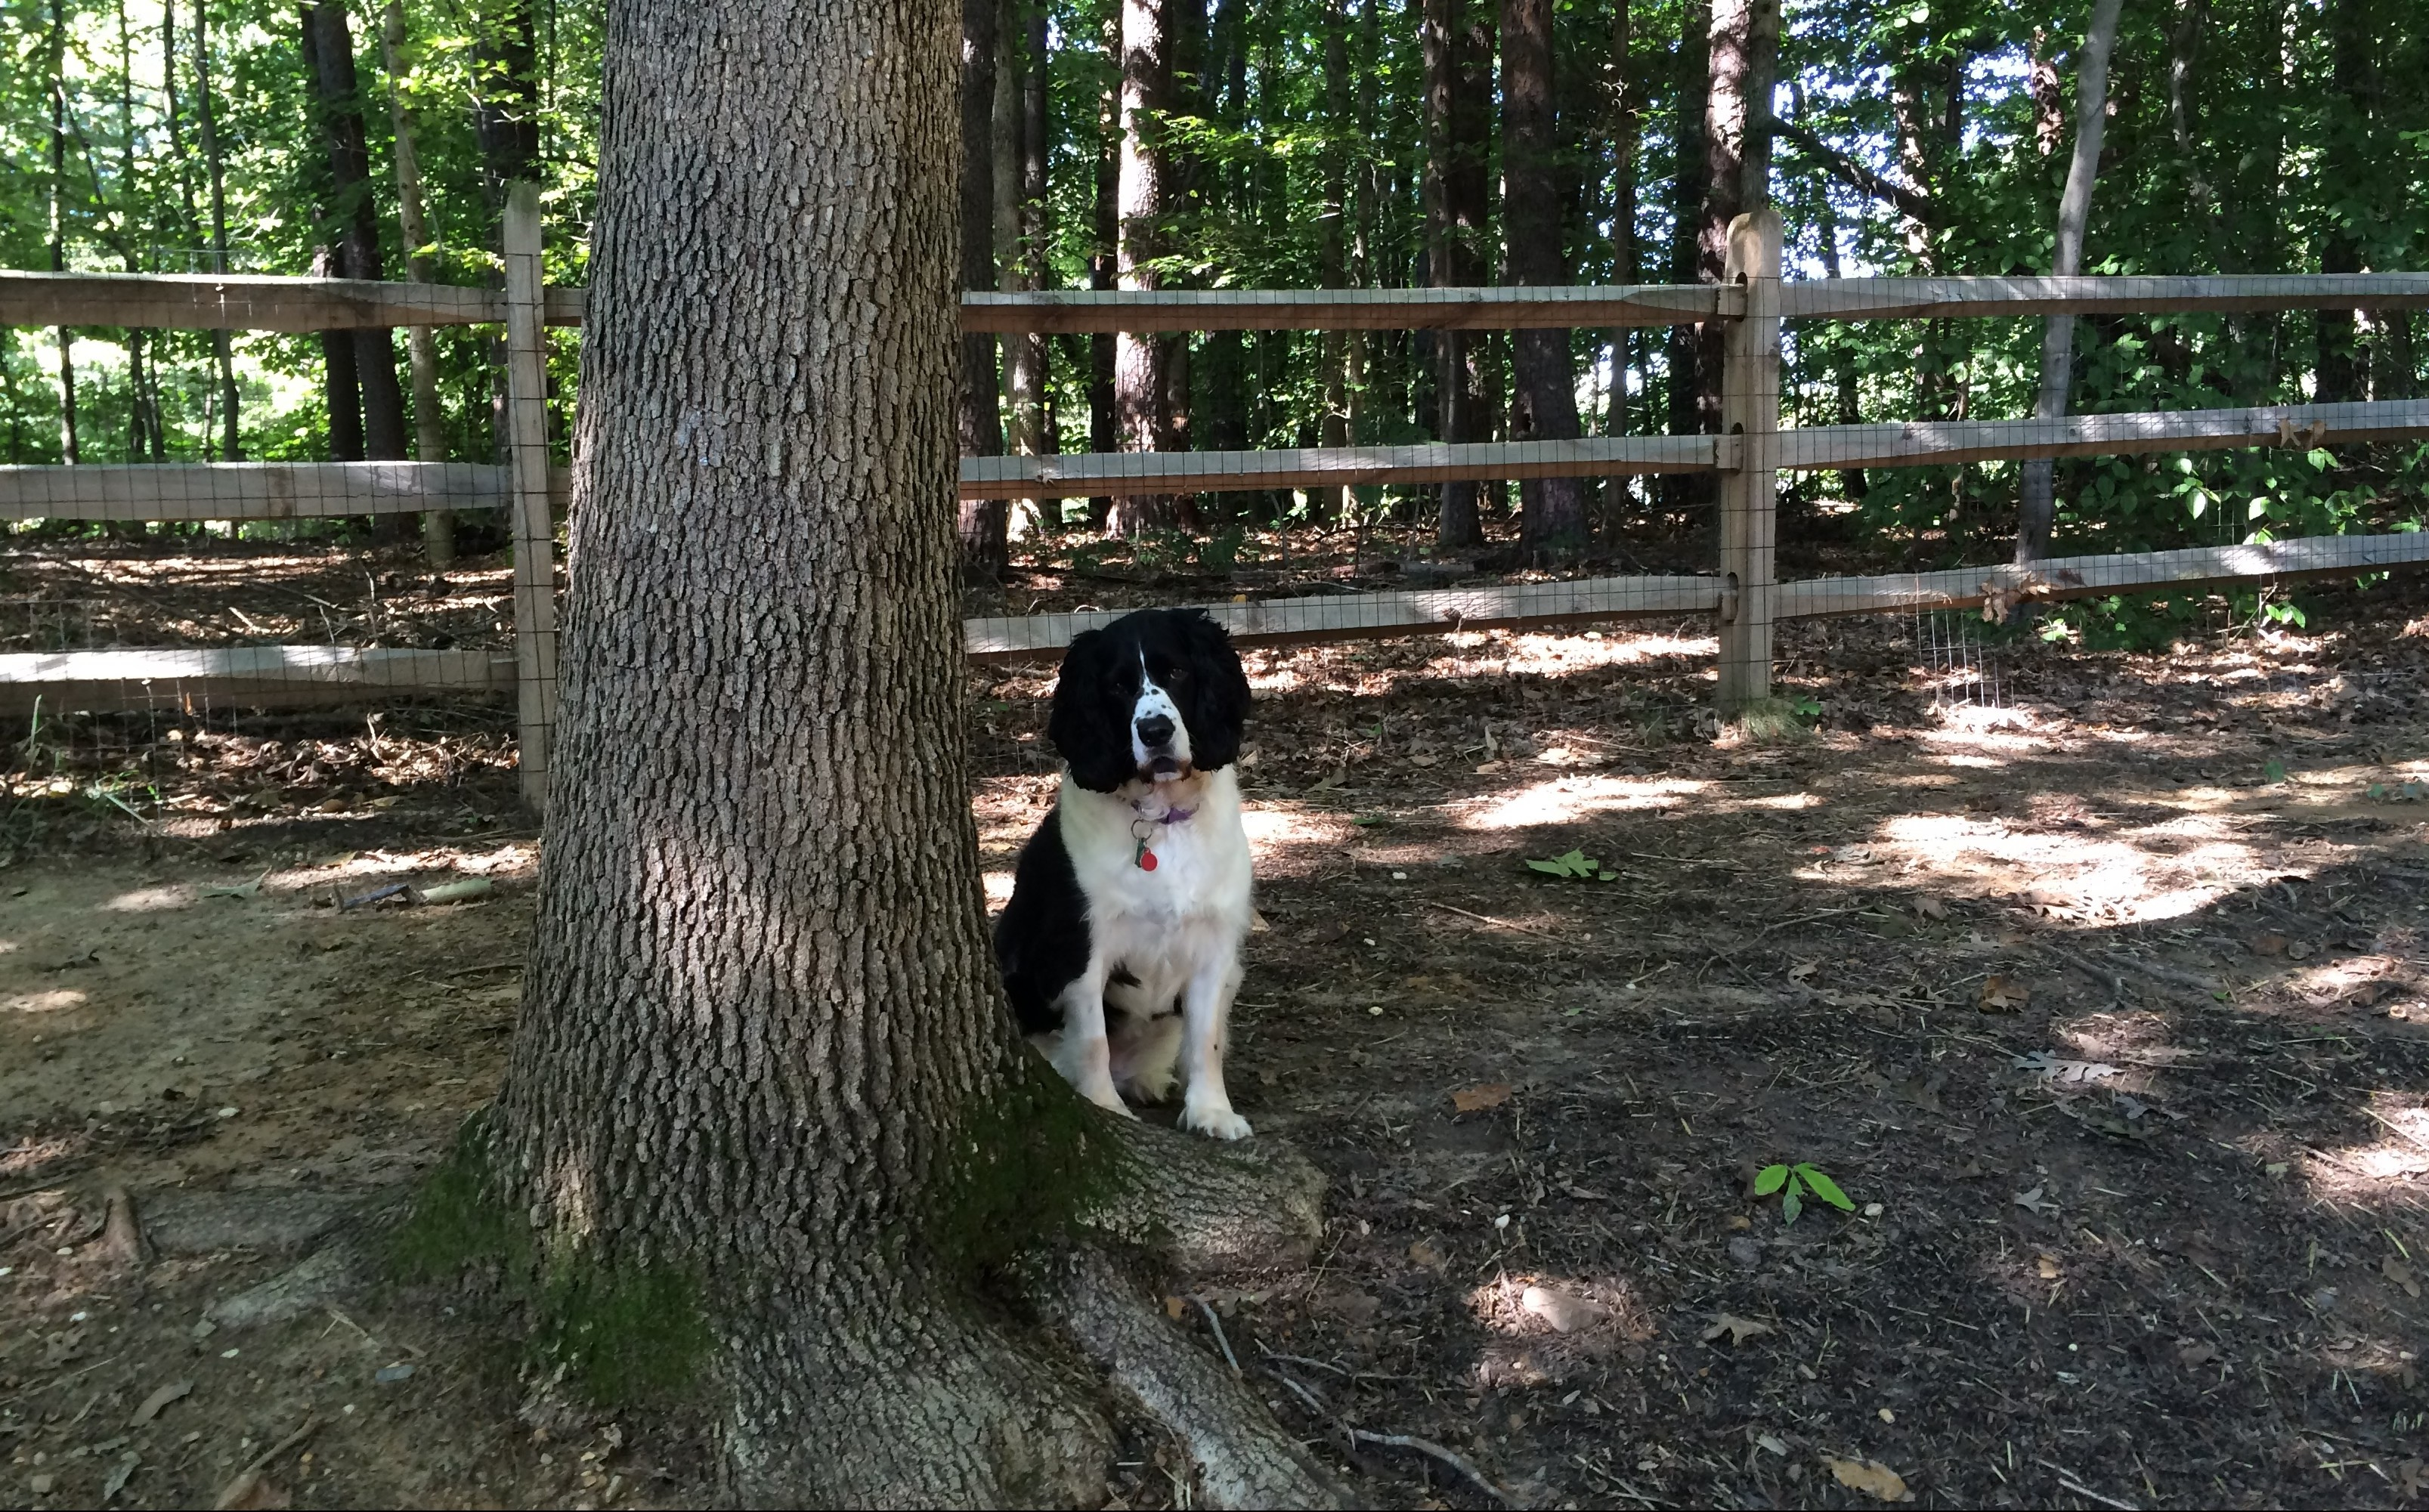 English springer spaniel beside tree